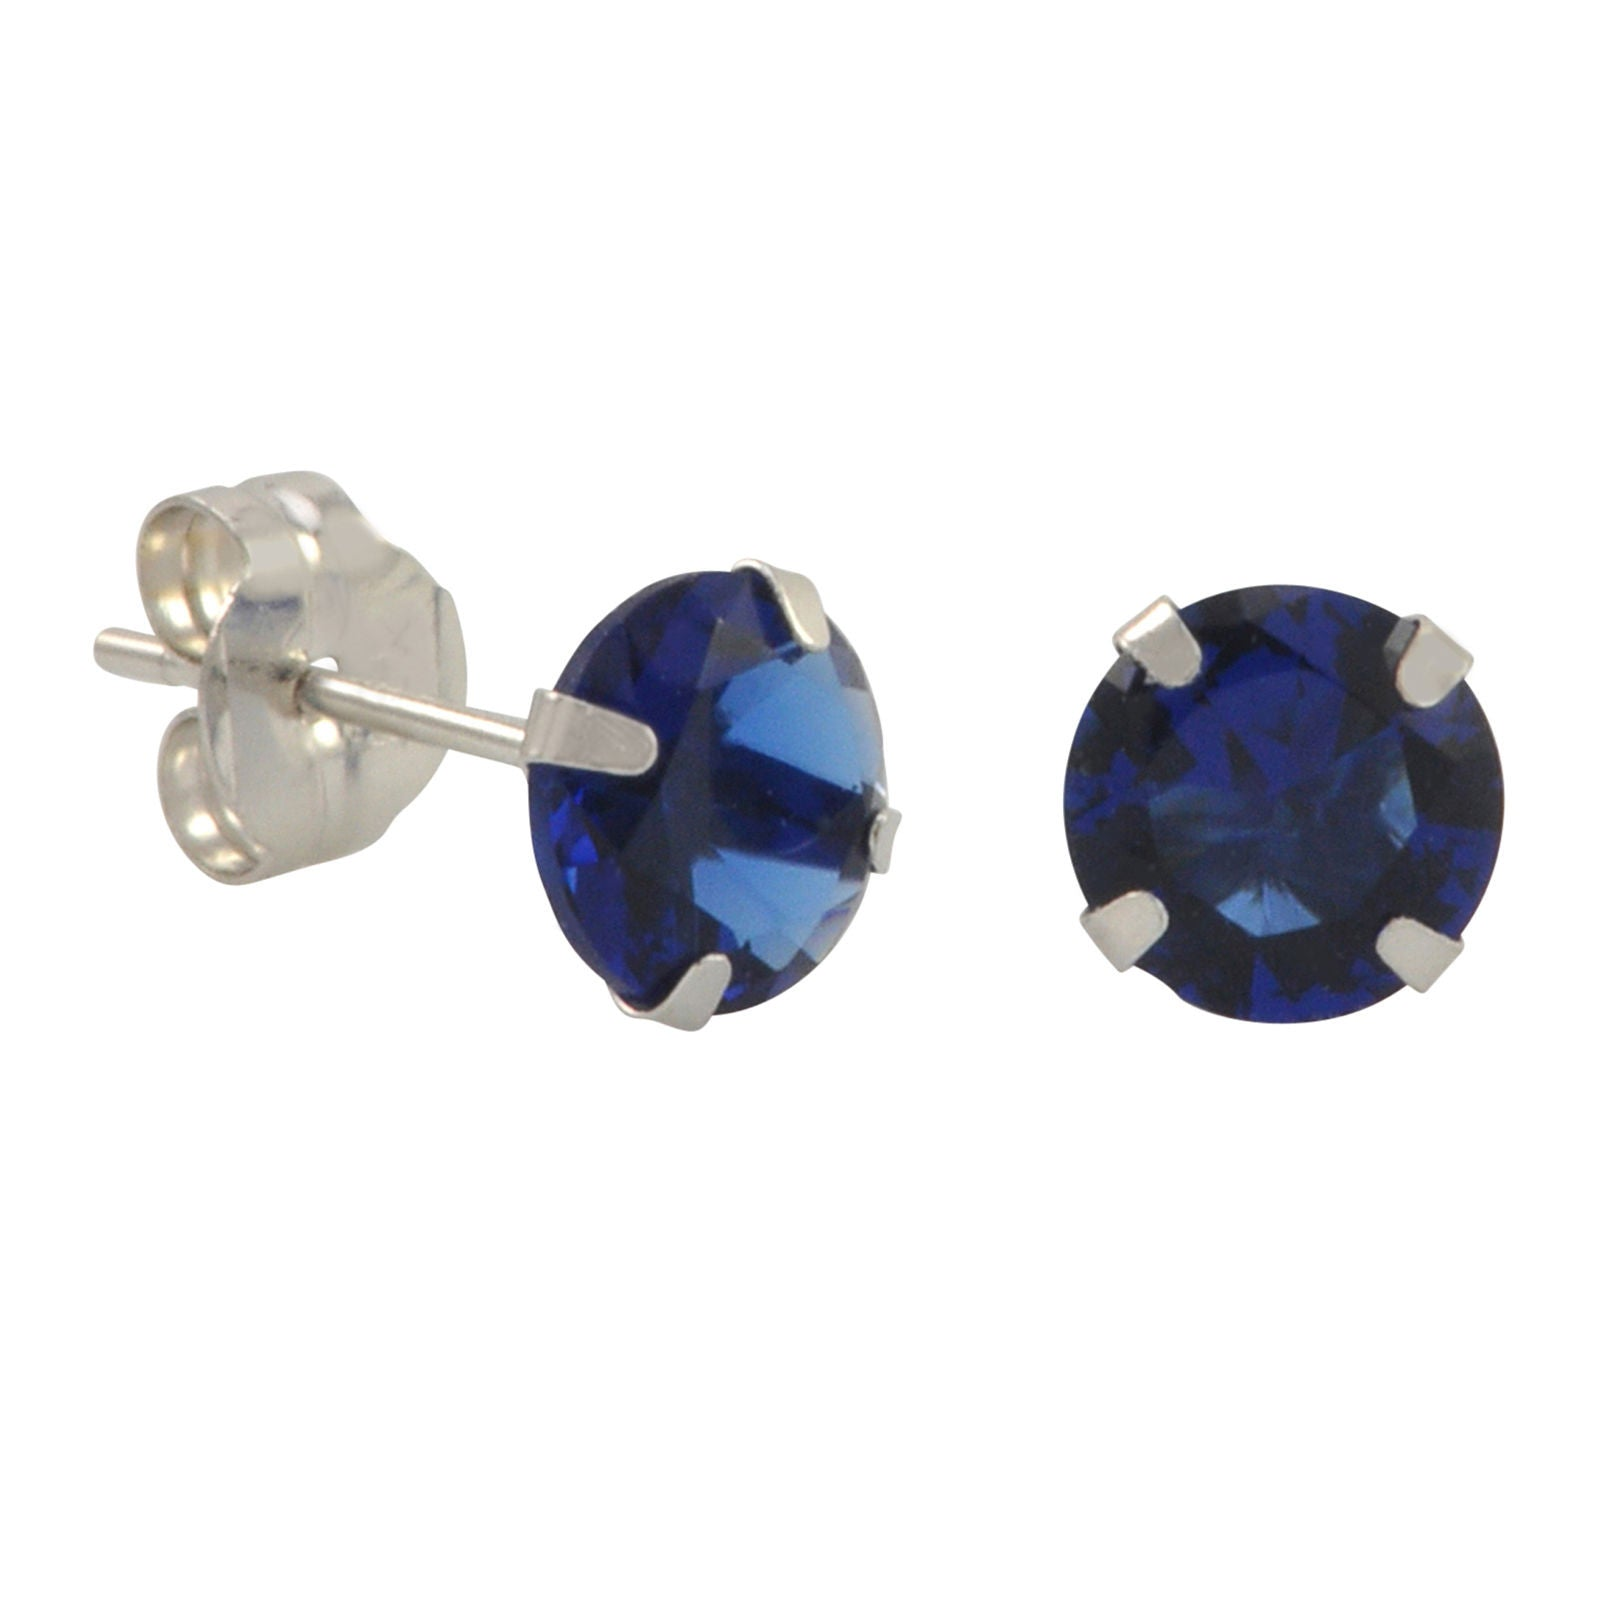 ad09bf188 10k White Gold Blue Sapphire CZ Stud Earrings Cubic Zirconia Round Prong Set